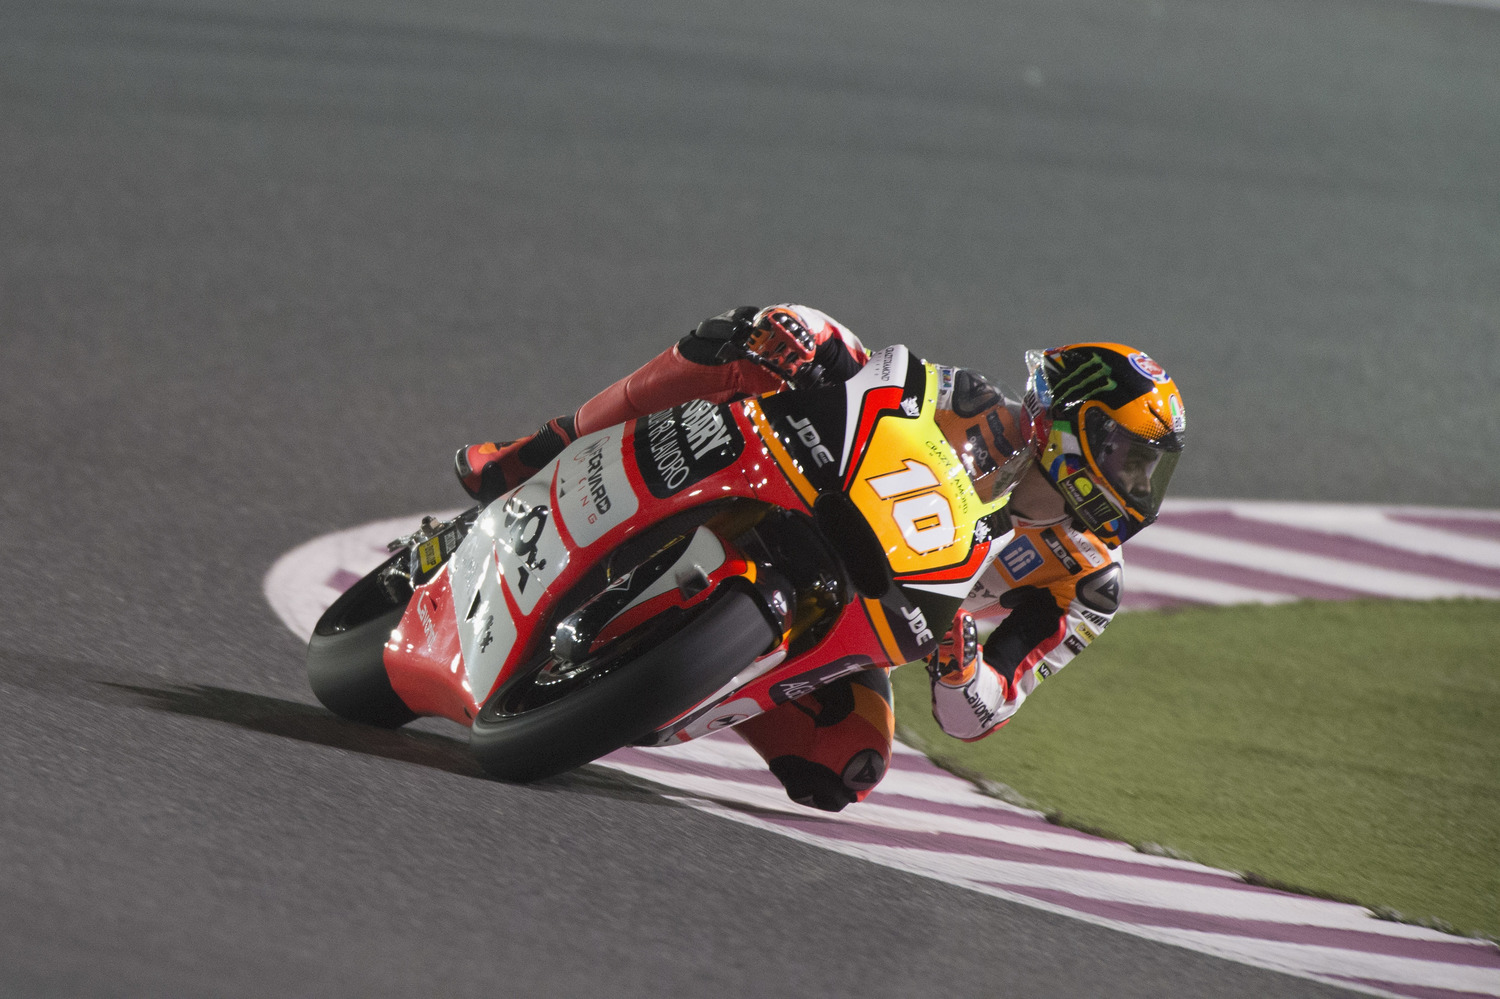 Losail has a very bitter taste for the Forward Racing Team